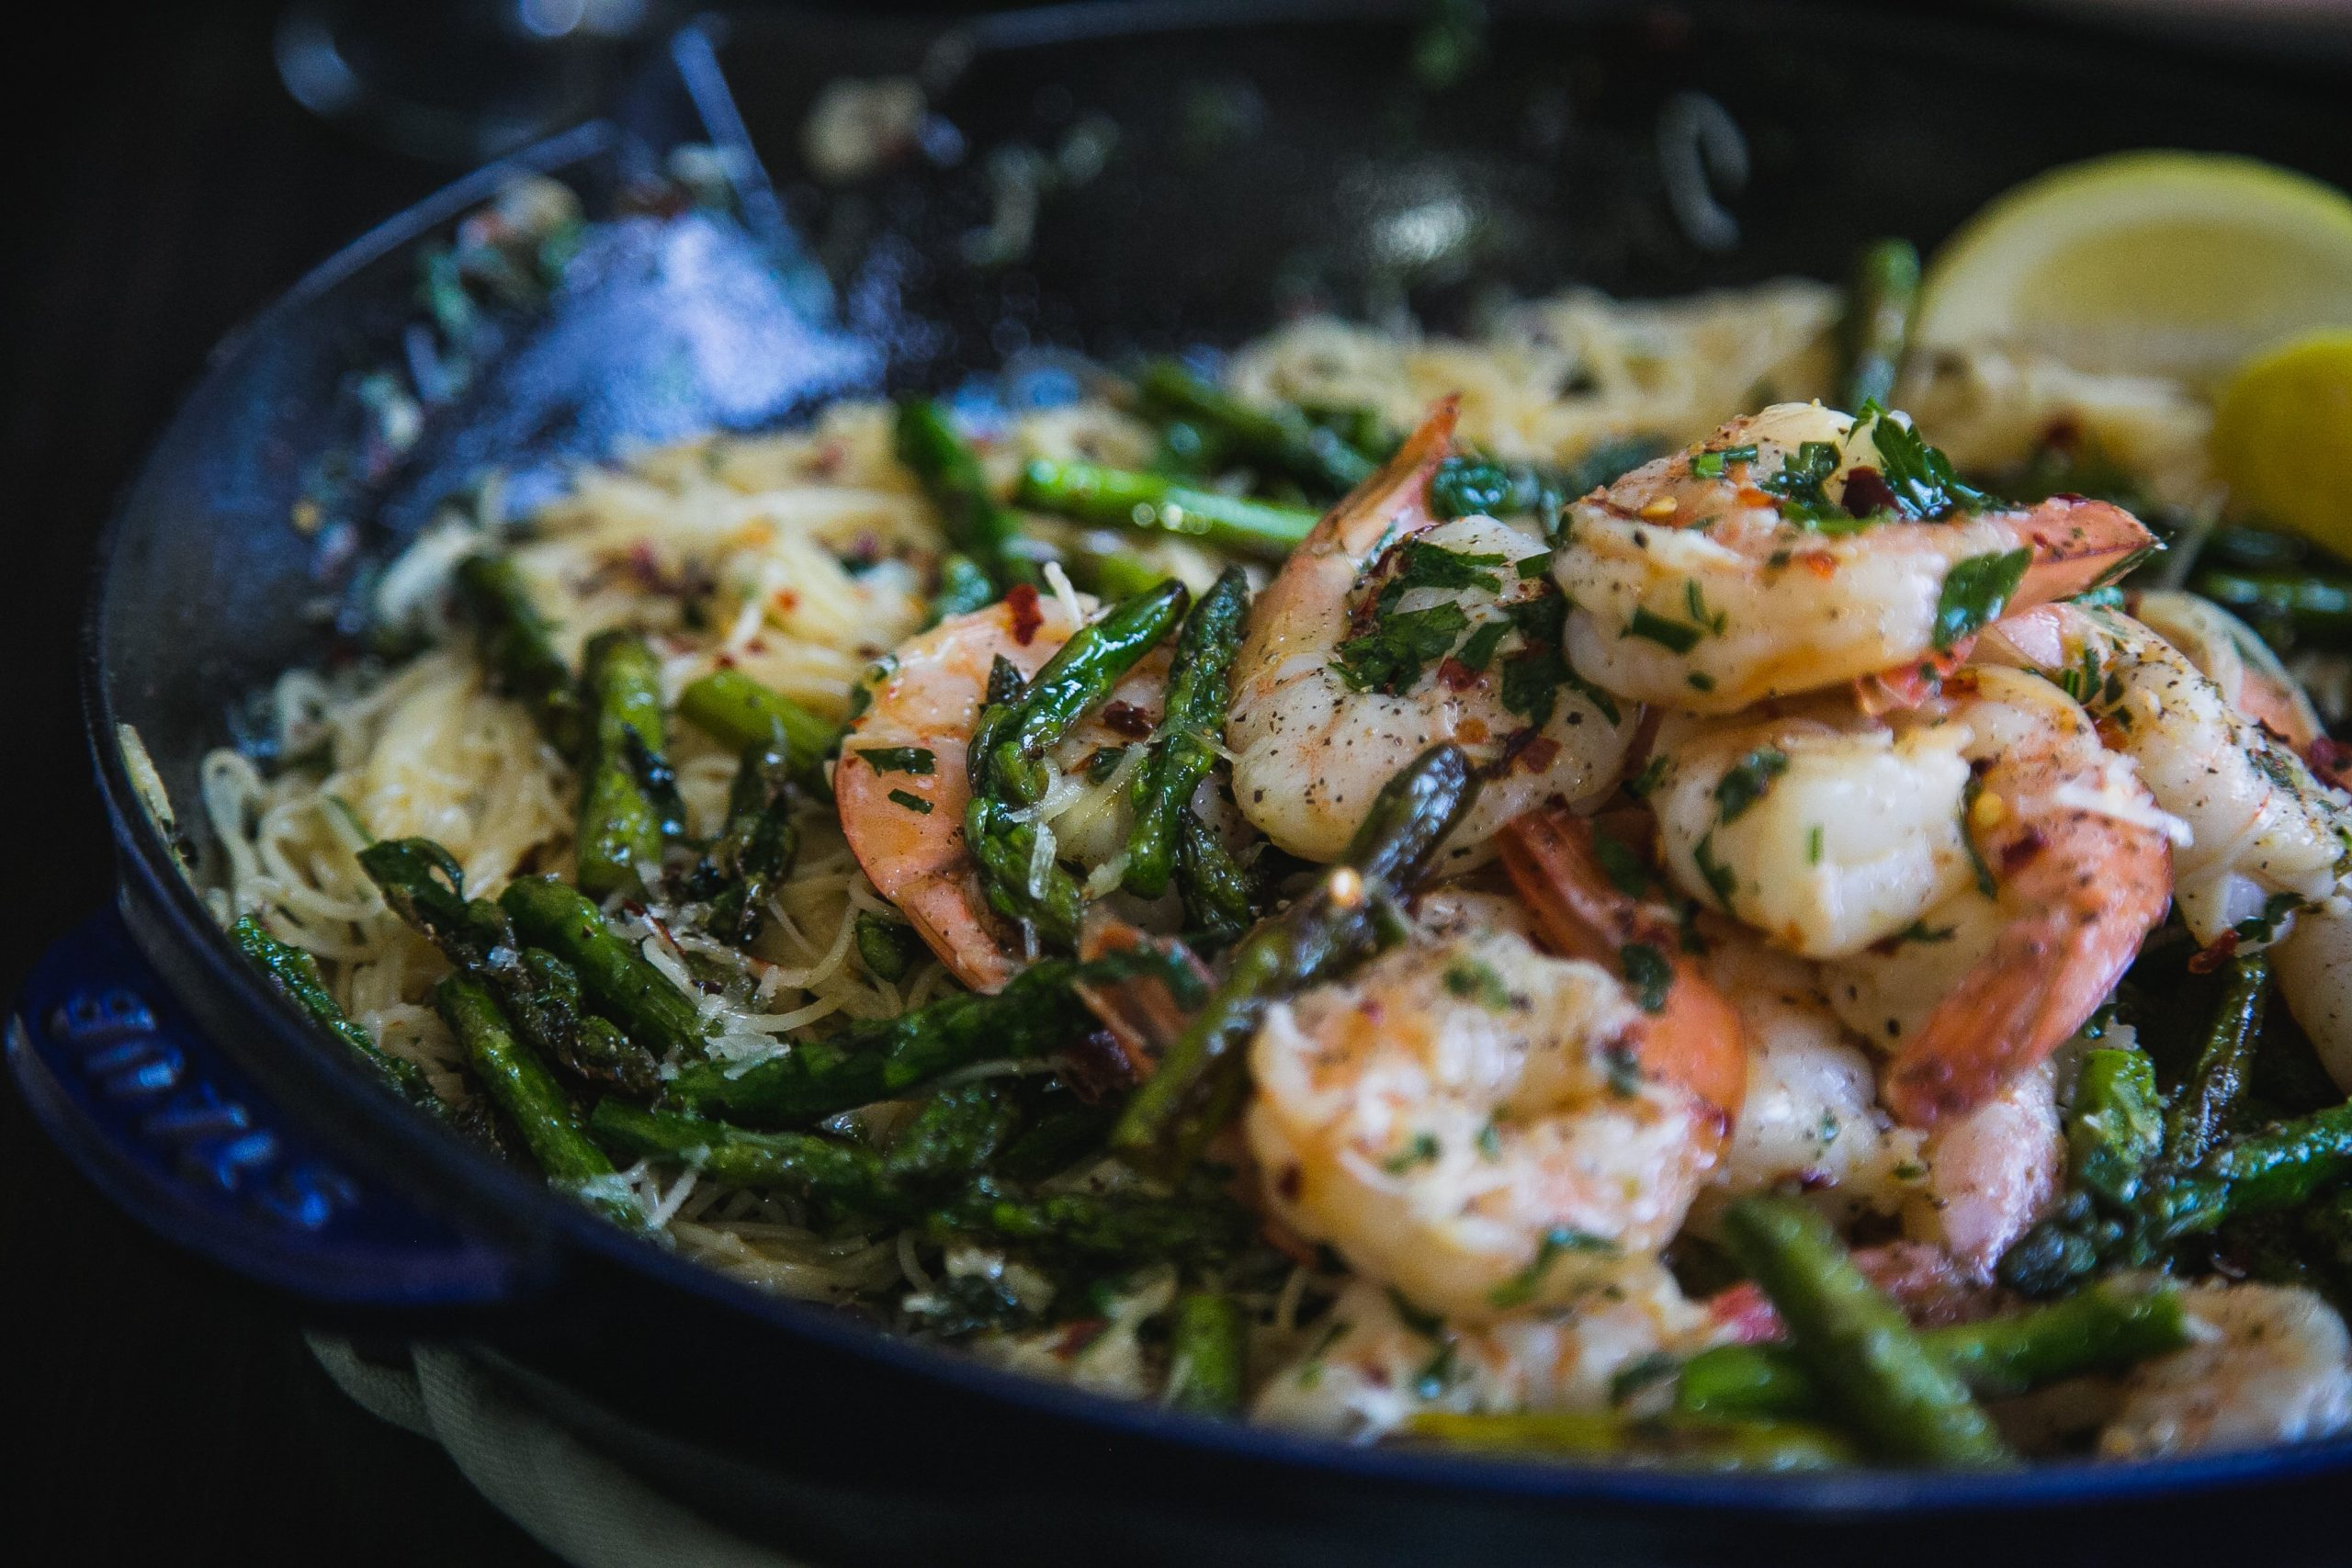 Spicy Shrimp Scampi Pasta With Asparagus The Chutney Life